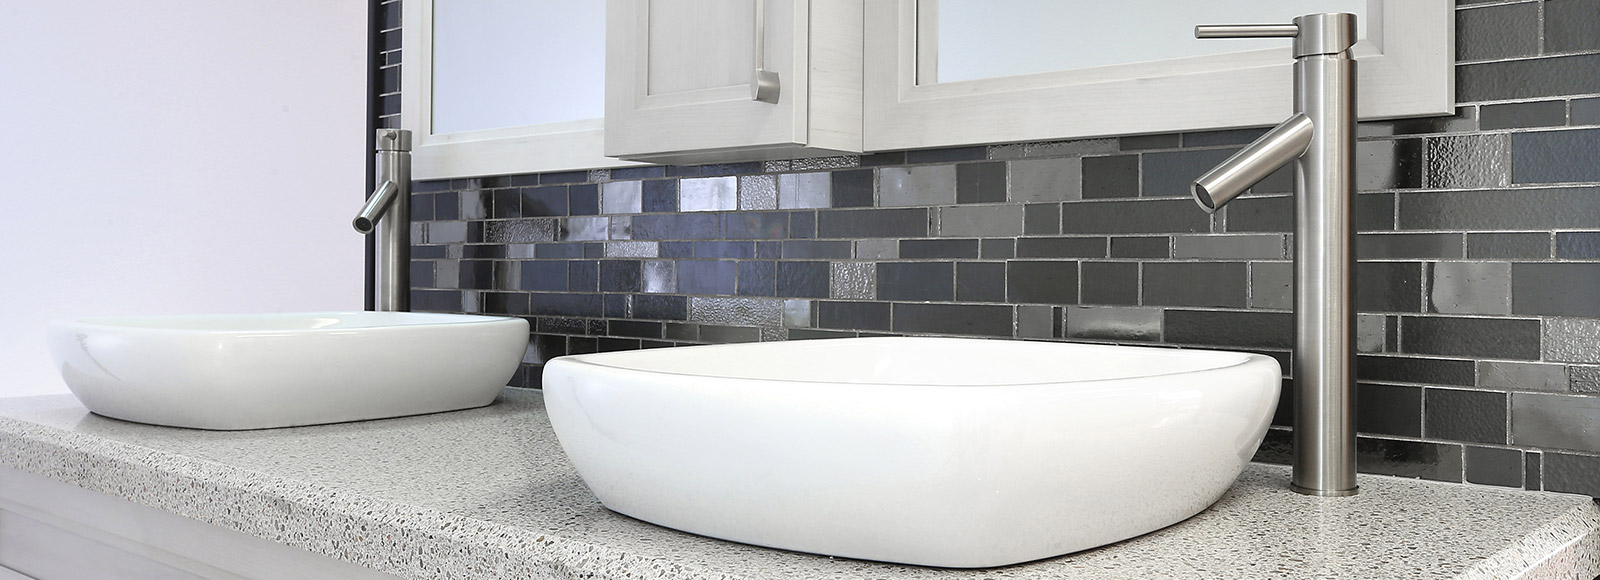 A double bathroom sink with white, raised basins, stainless steel faucets and a gray, brick backsplash.